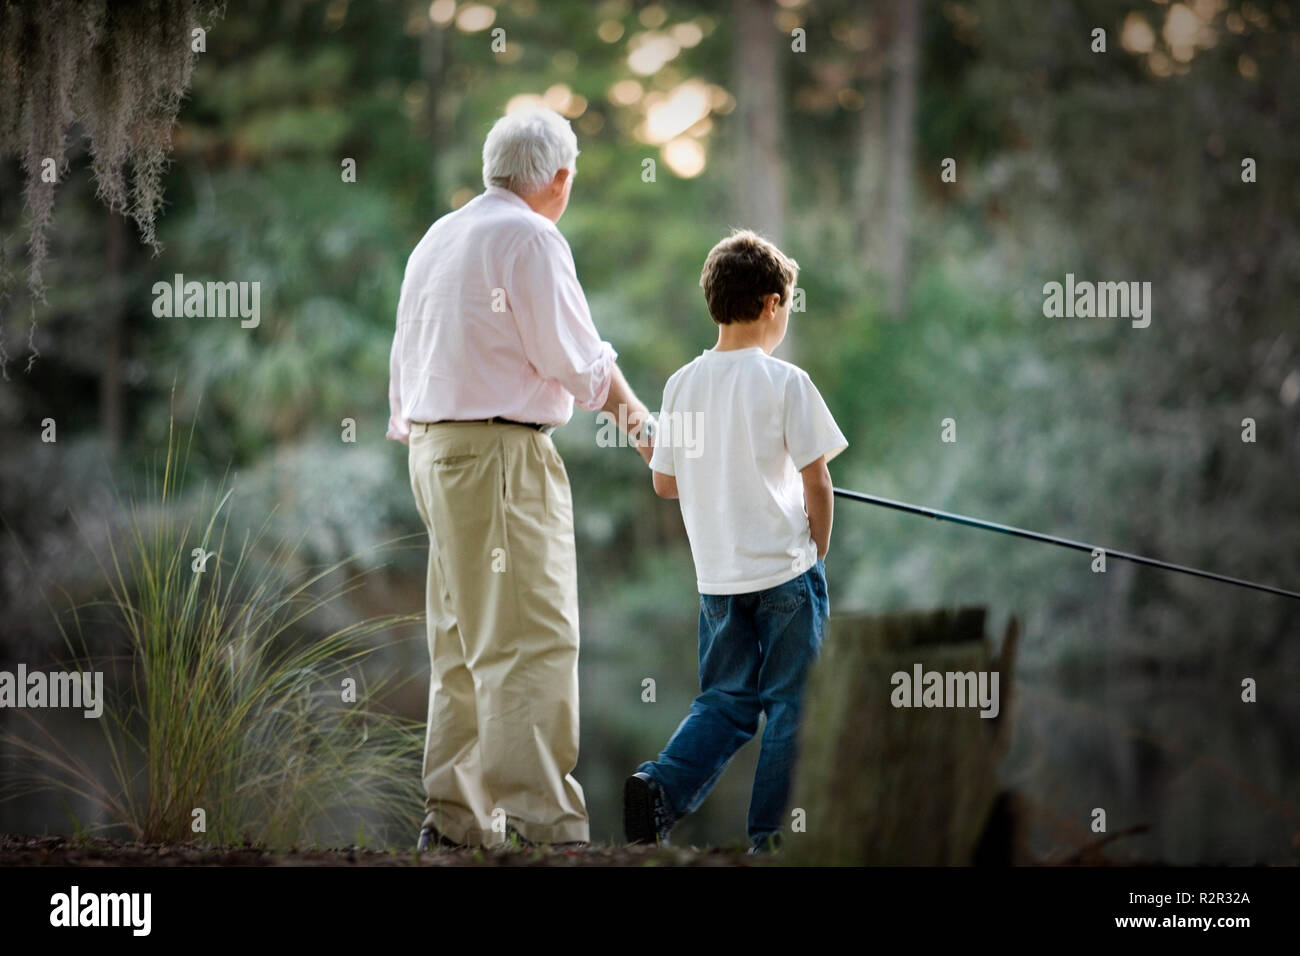 Senior adult man fishing in a lake with his young grandson. - Stock Image